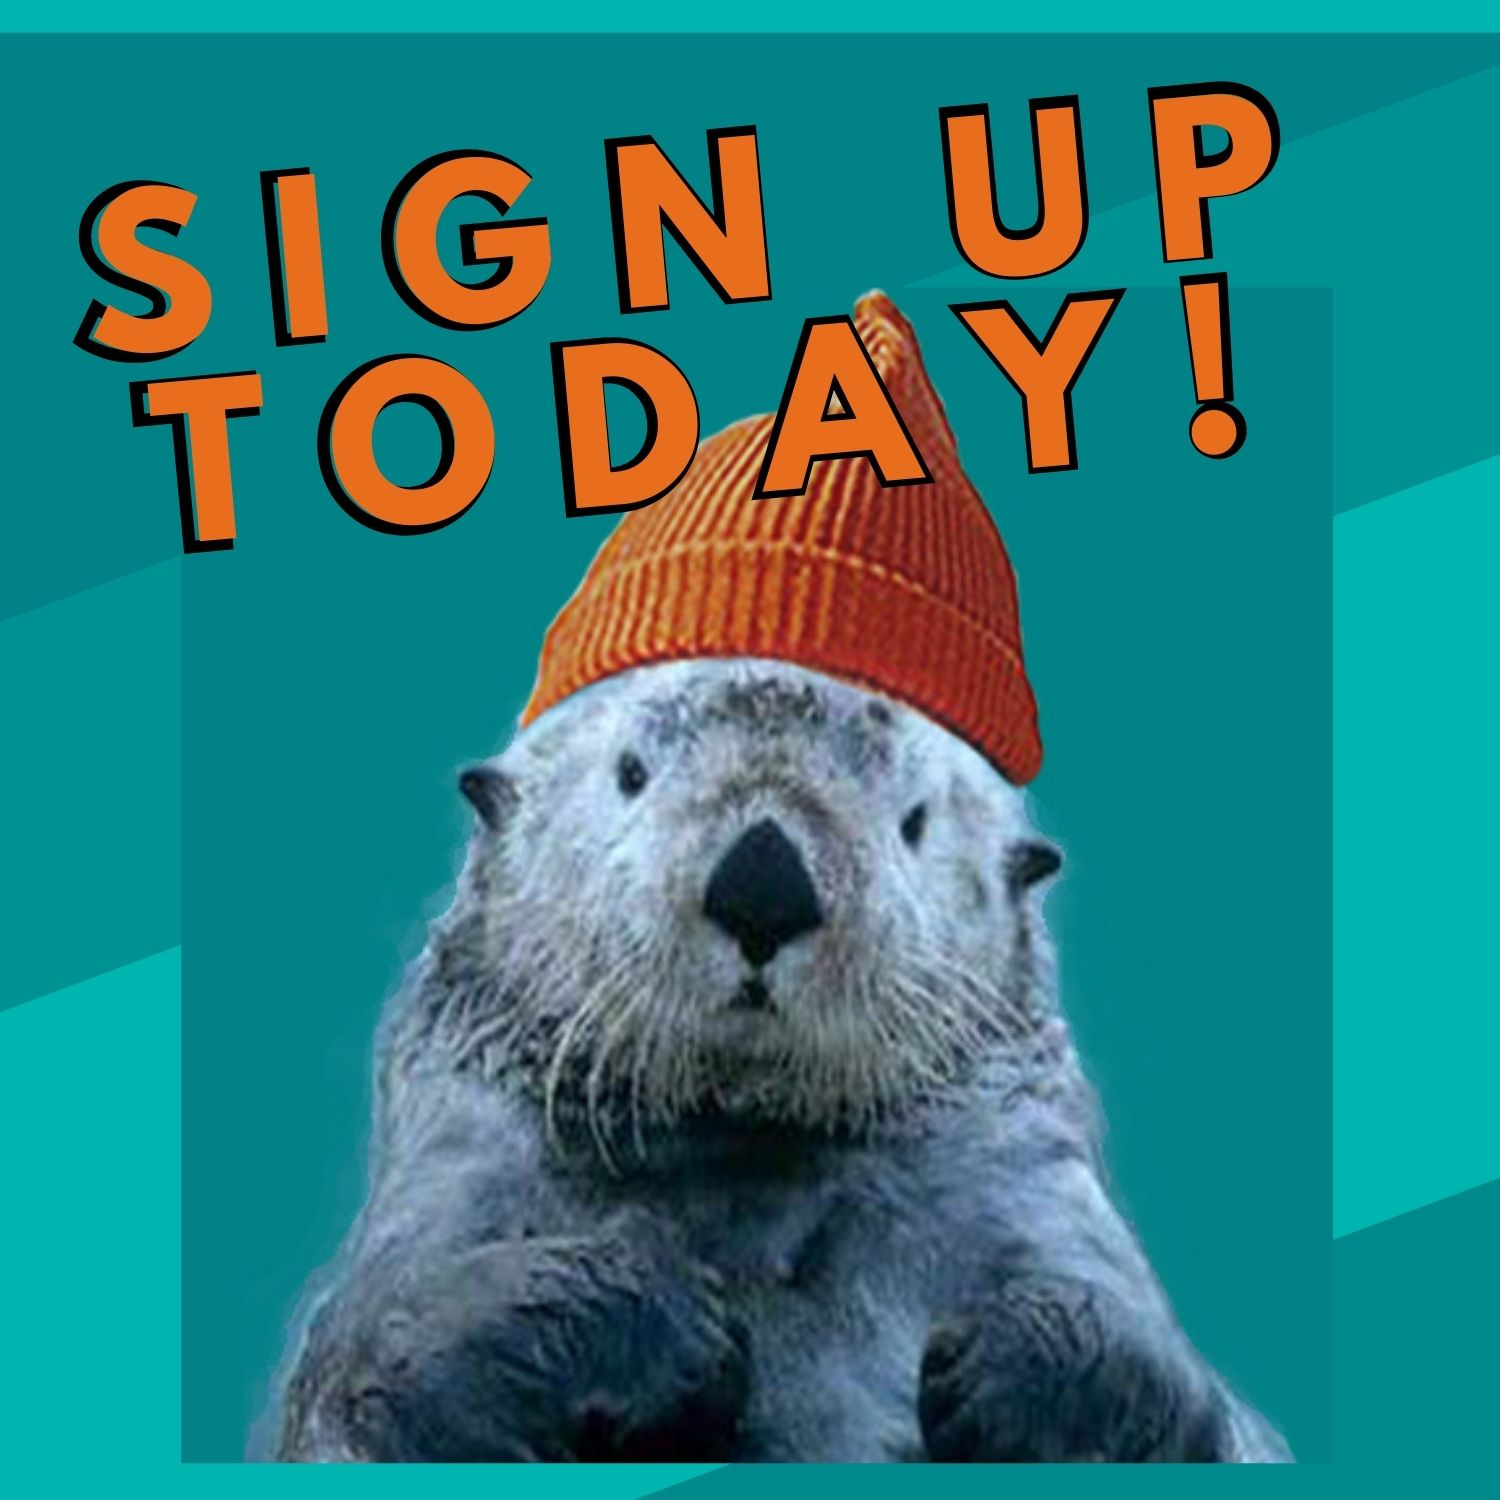 Otter in hat with text reads: Sign up Today!